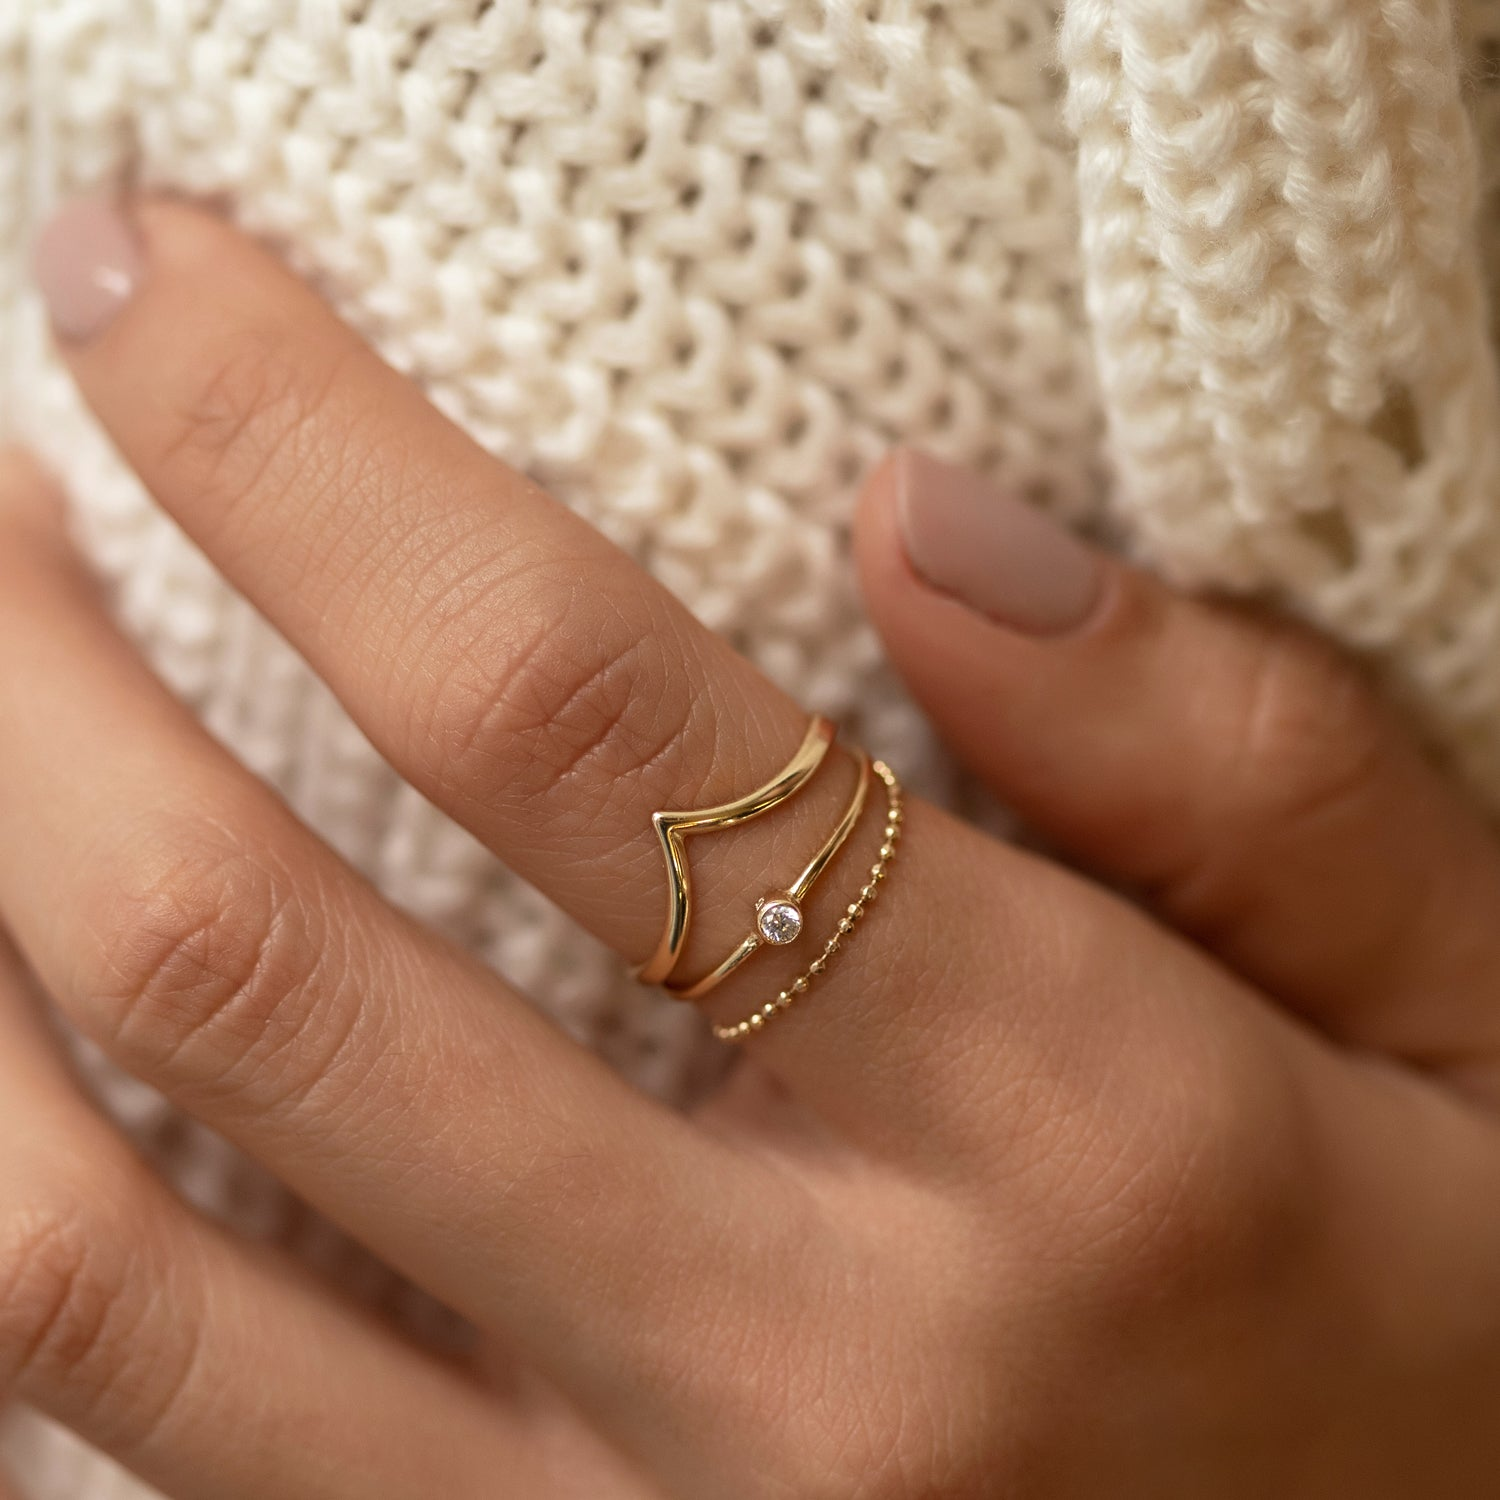 Dainty Chevron Ring, Rings - AMY O. Jewelry